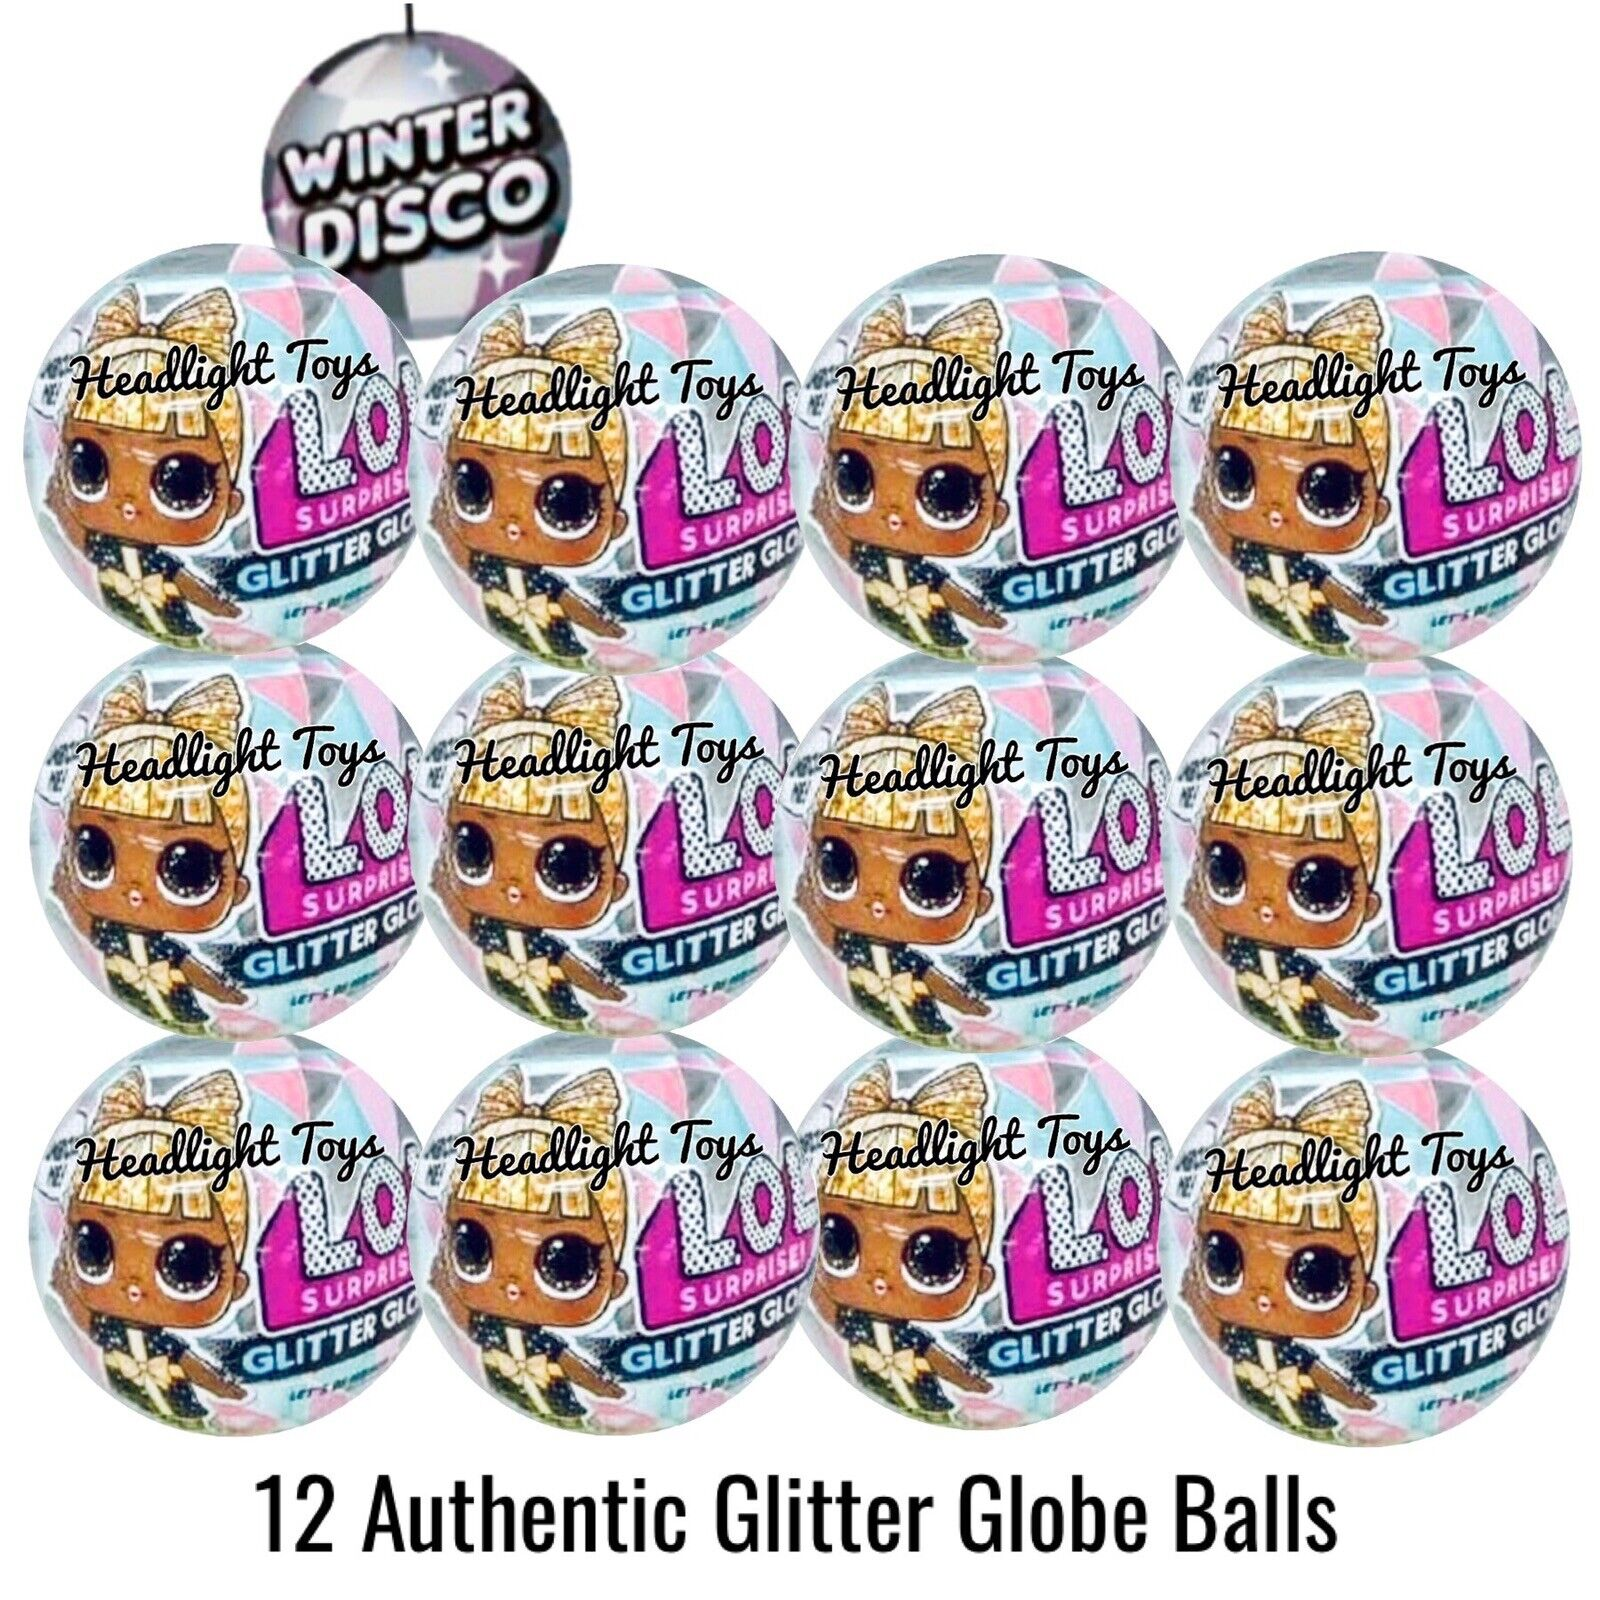 12 LOL Surprise Glitter Globe Doll Ball Winter Disco Series Big Sister Tots OMG